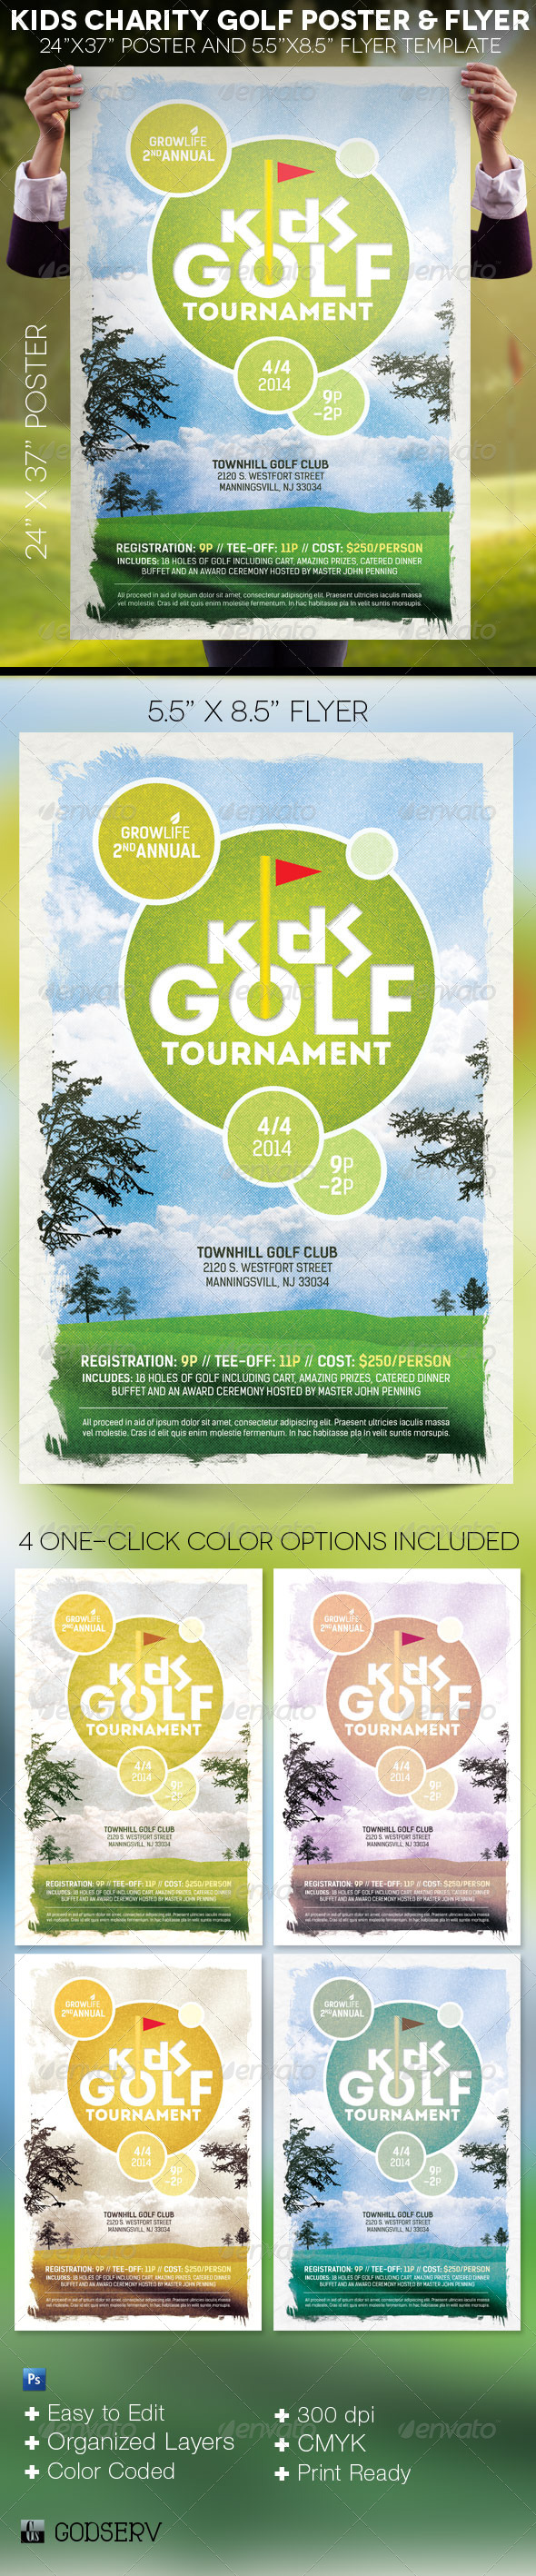 Kids Charity Golf Poster and Flyer Template - Events Flyers